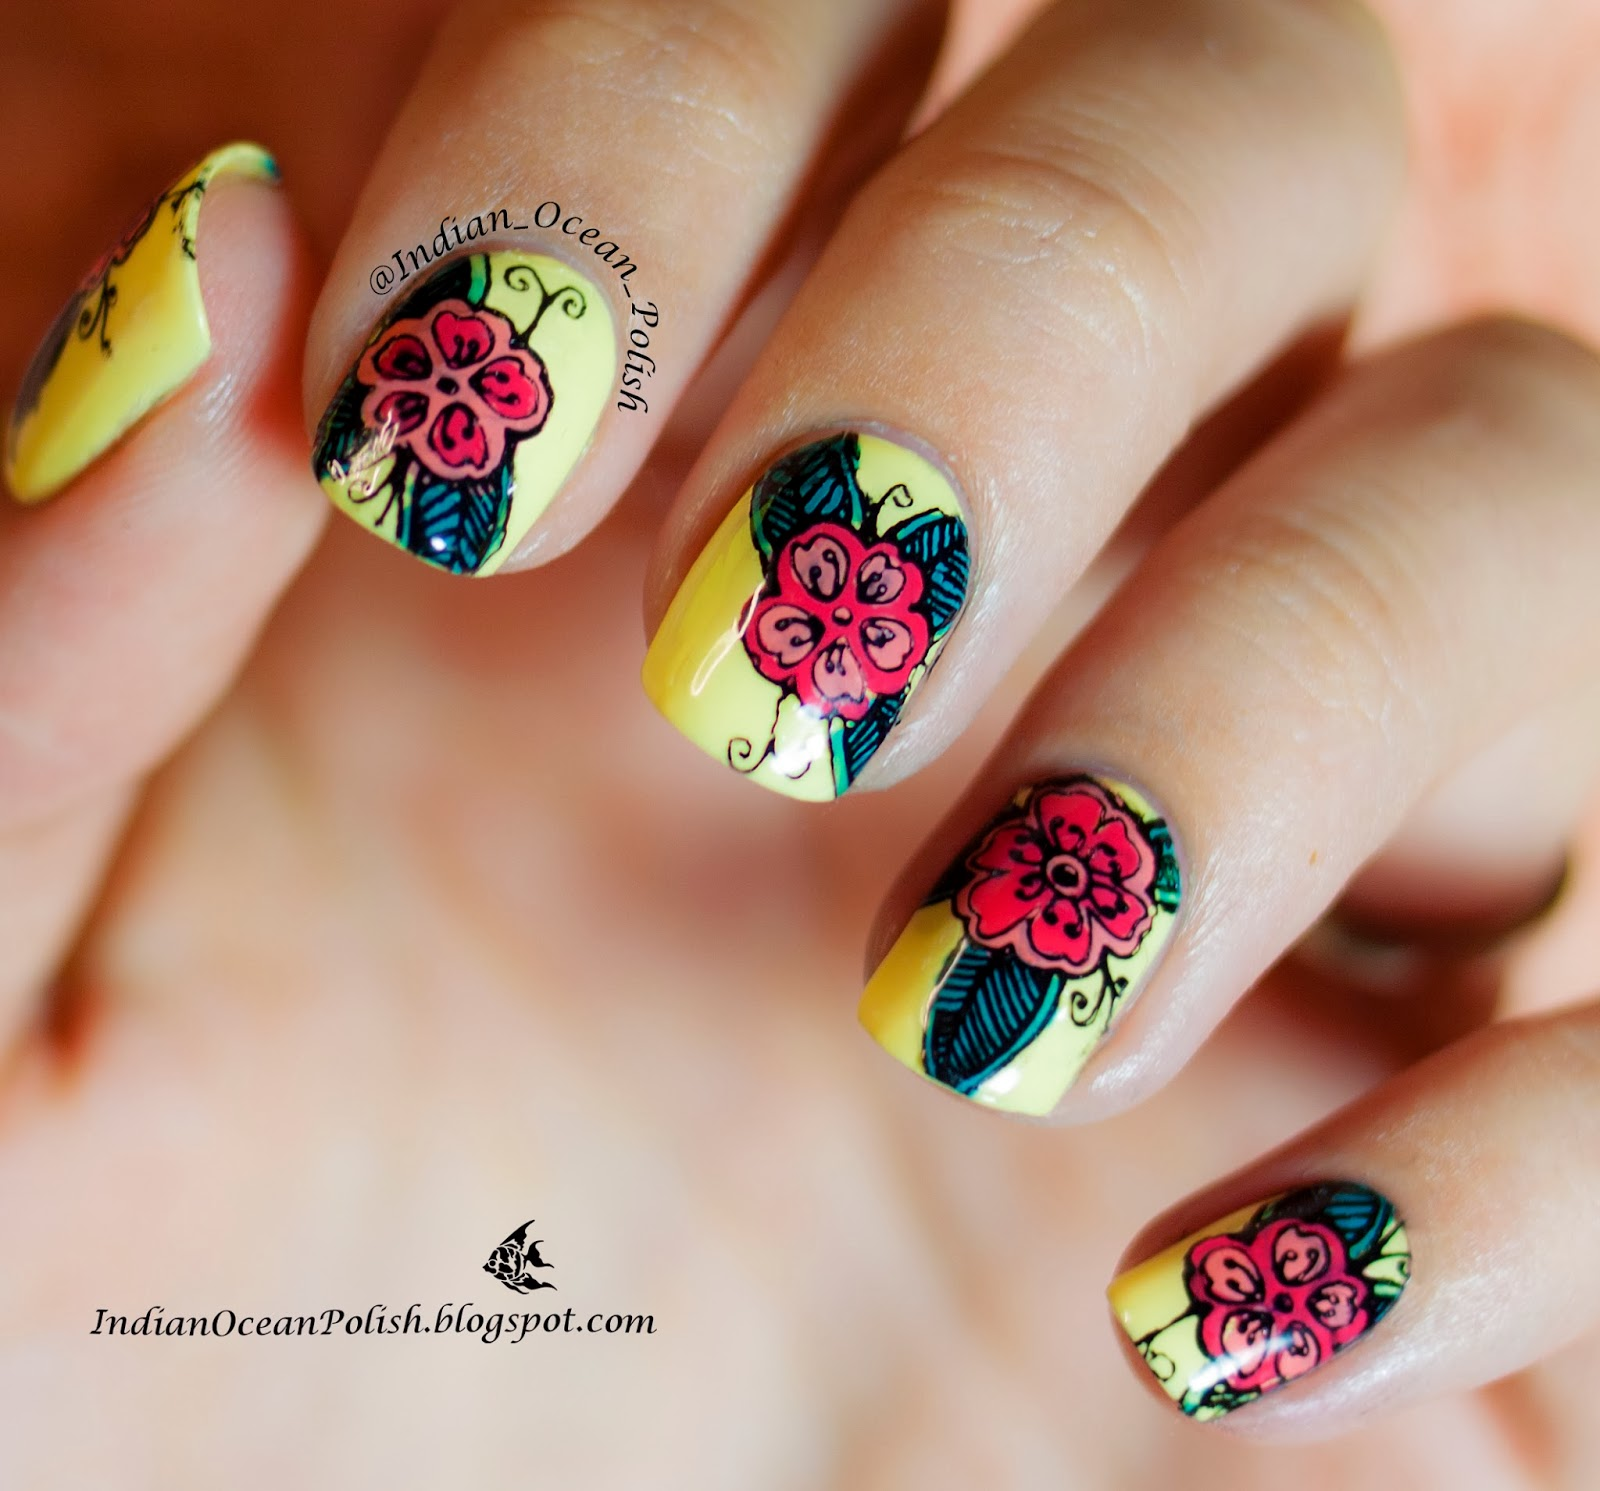 Indian Ocean Polish How To Make Your Own Nail Decals Tutorial - How to make nail decals at home